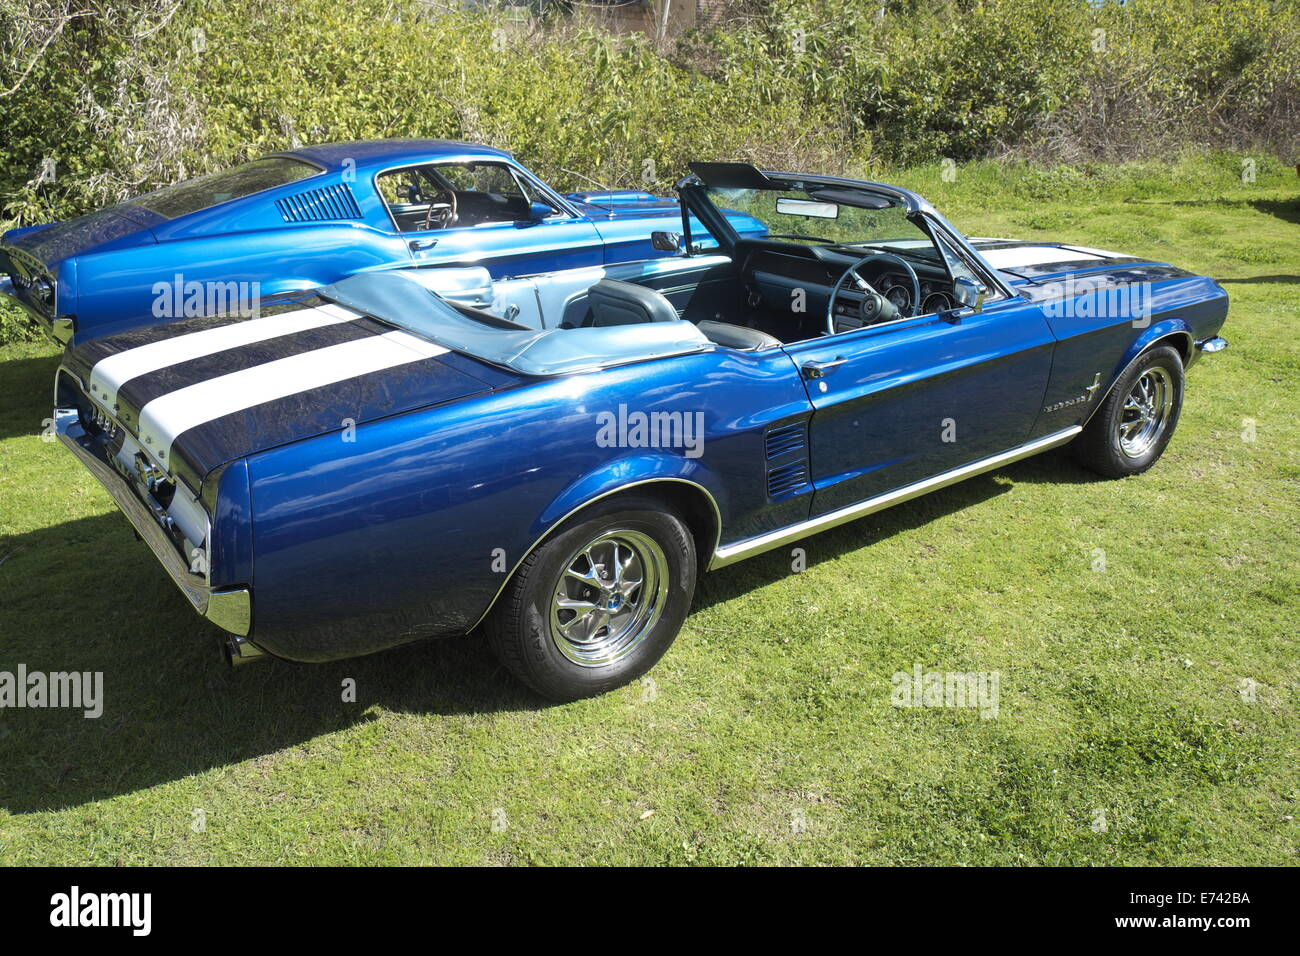 1967 Ford Mustang Stock Photos & 1967 Ford Mustang Stock